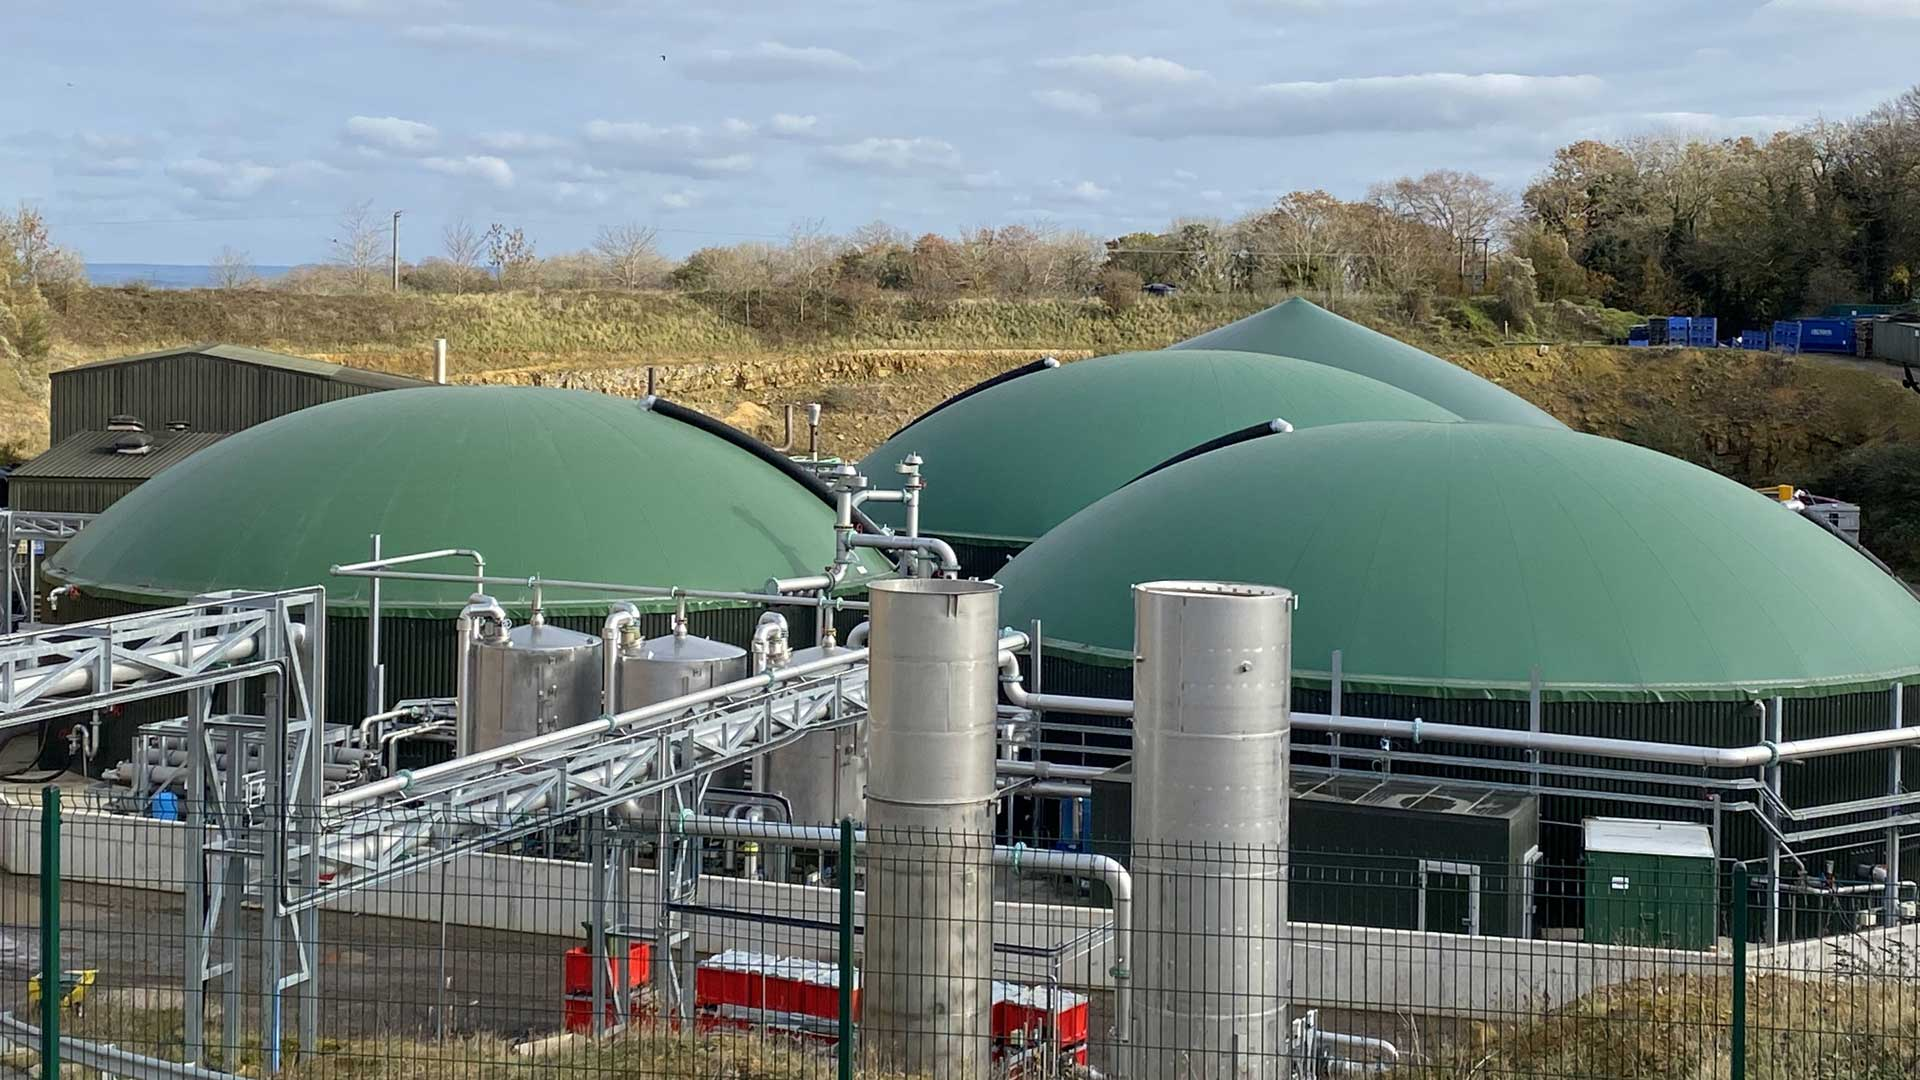 Capitas are pleased to have supported our customer, Northwick Estate, with further investment in their Anaerobic Digestion infrastructure